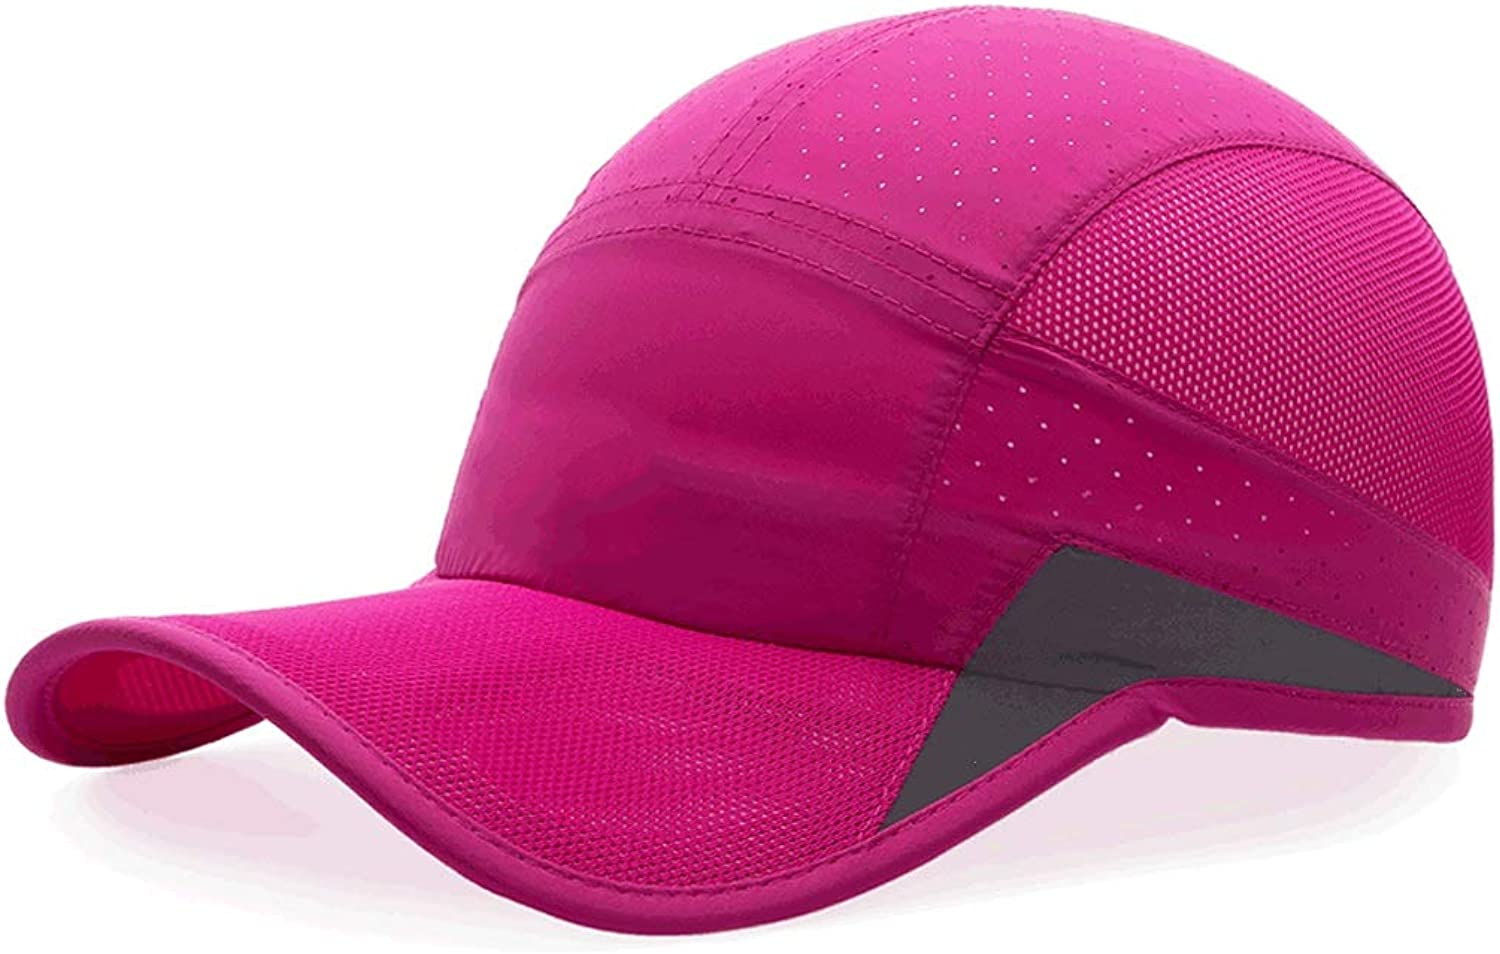 Sun Hat Men's Summer QuickDrying Outdoor Thin Cap Sunscreen Fishing Sunshade Casual Breathable Baseball Cap 5660cm ZHAOSHUNLI (color   Pink)